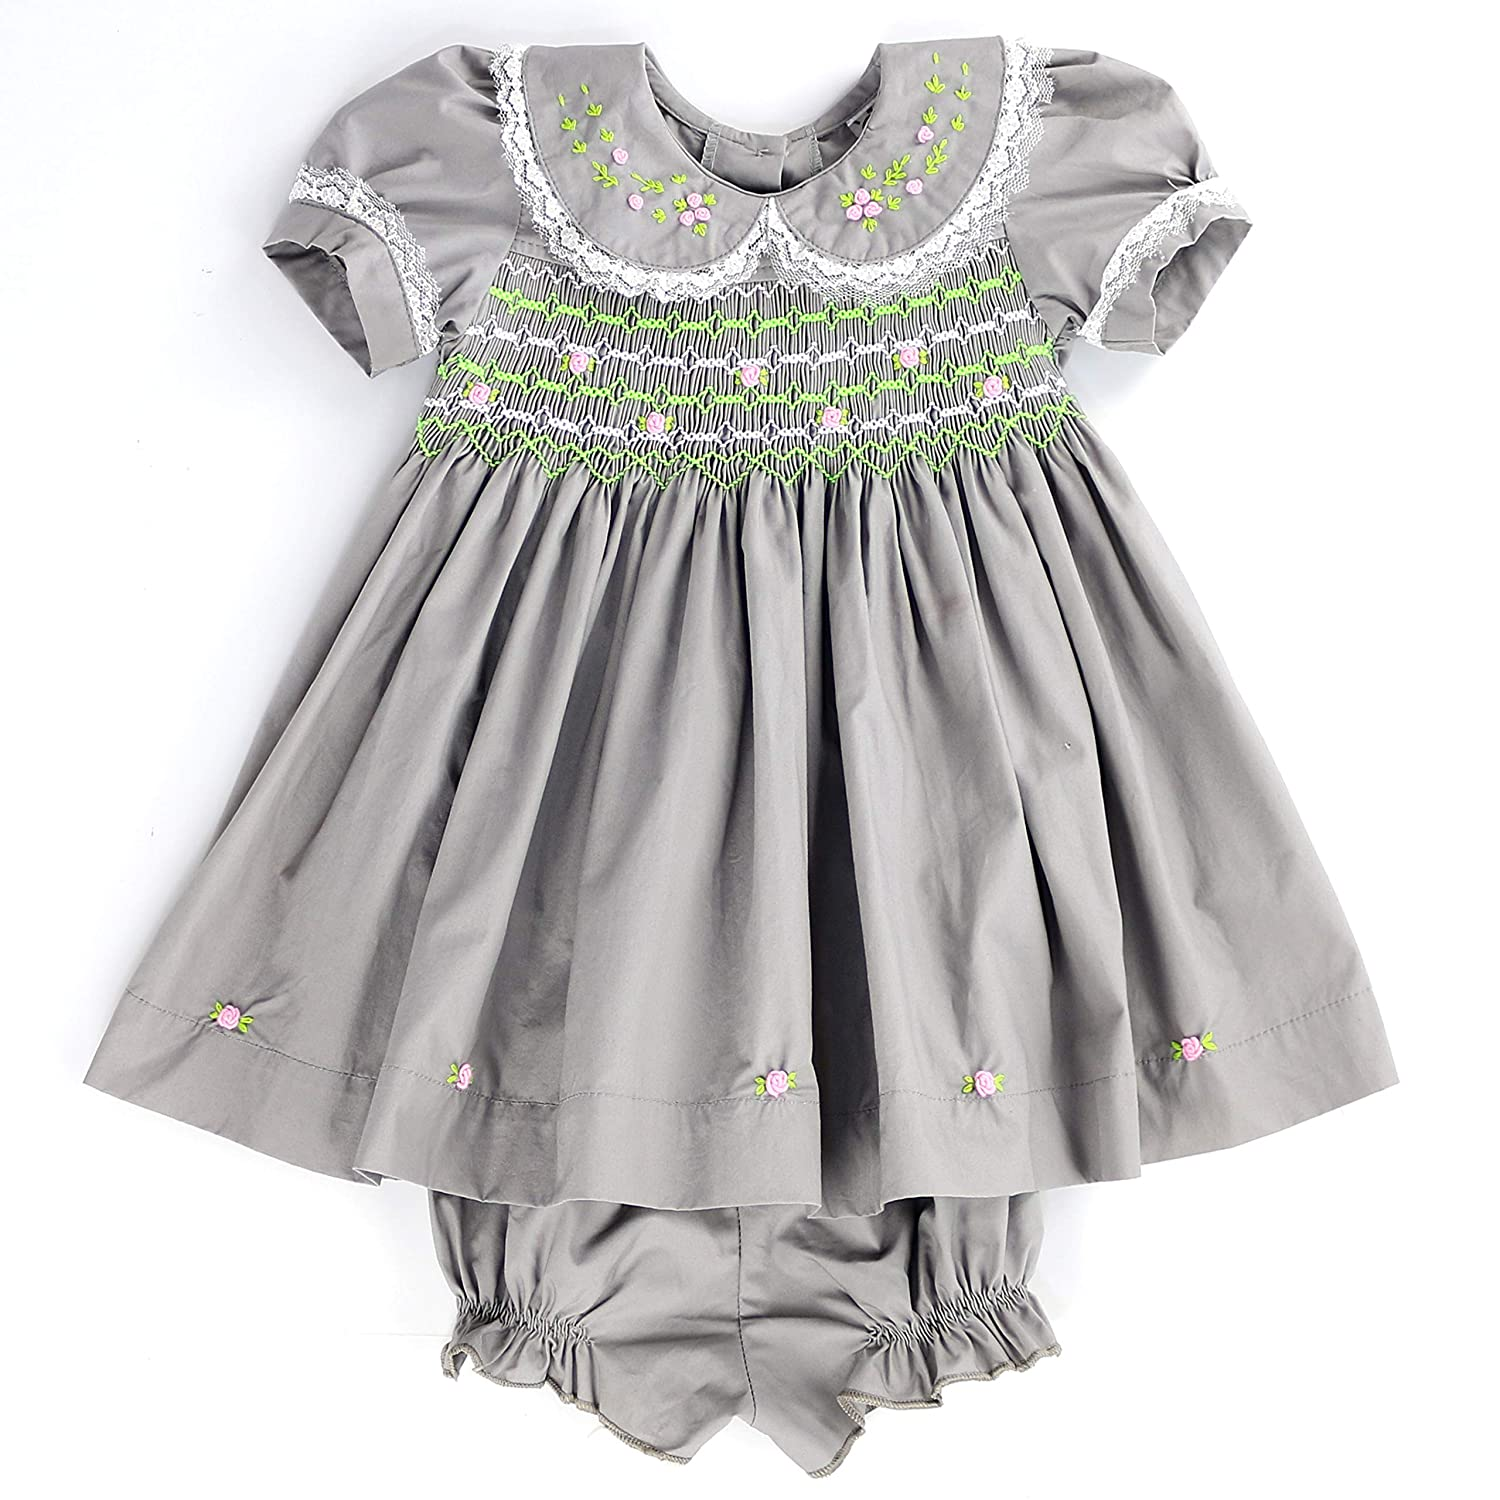 99fd3f305e77 Amazon.com: sissymini - Lace & Flower Blossom Baby Girls Heavy Cotton Hand  Smocked & Embroidered Dress: Clothing